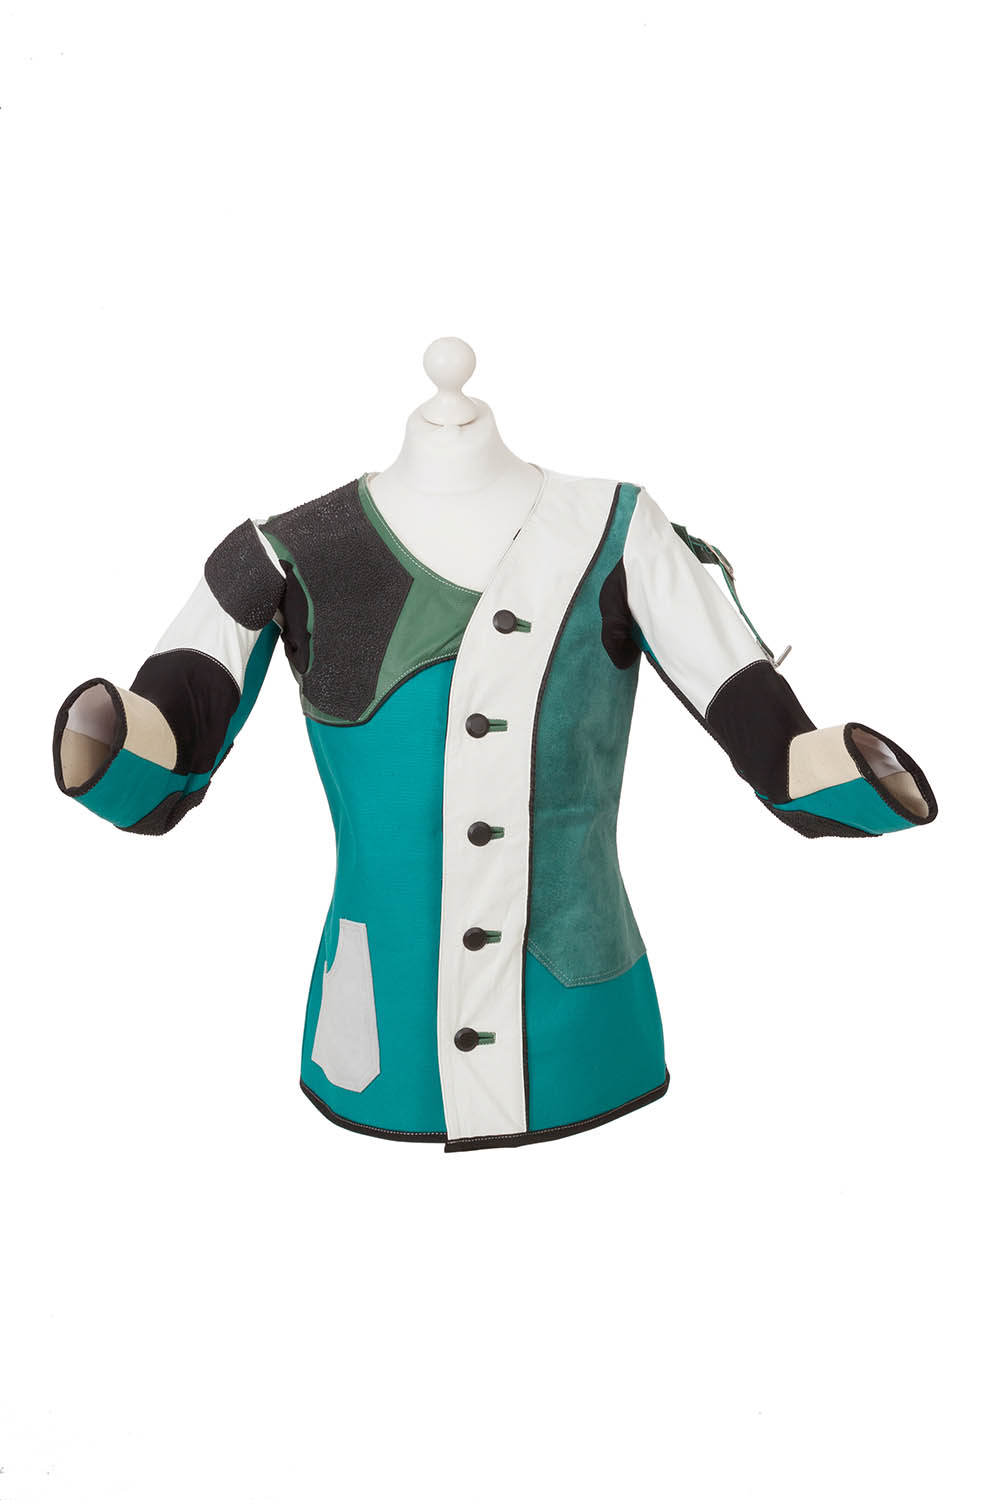 Centaur Match 19 Double Canvas and Leather Target Shooting Jacket - Front view